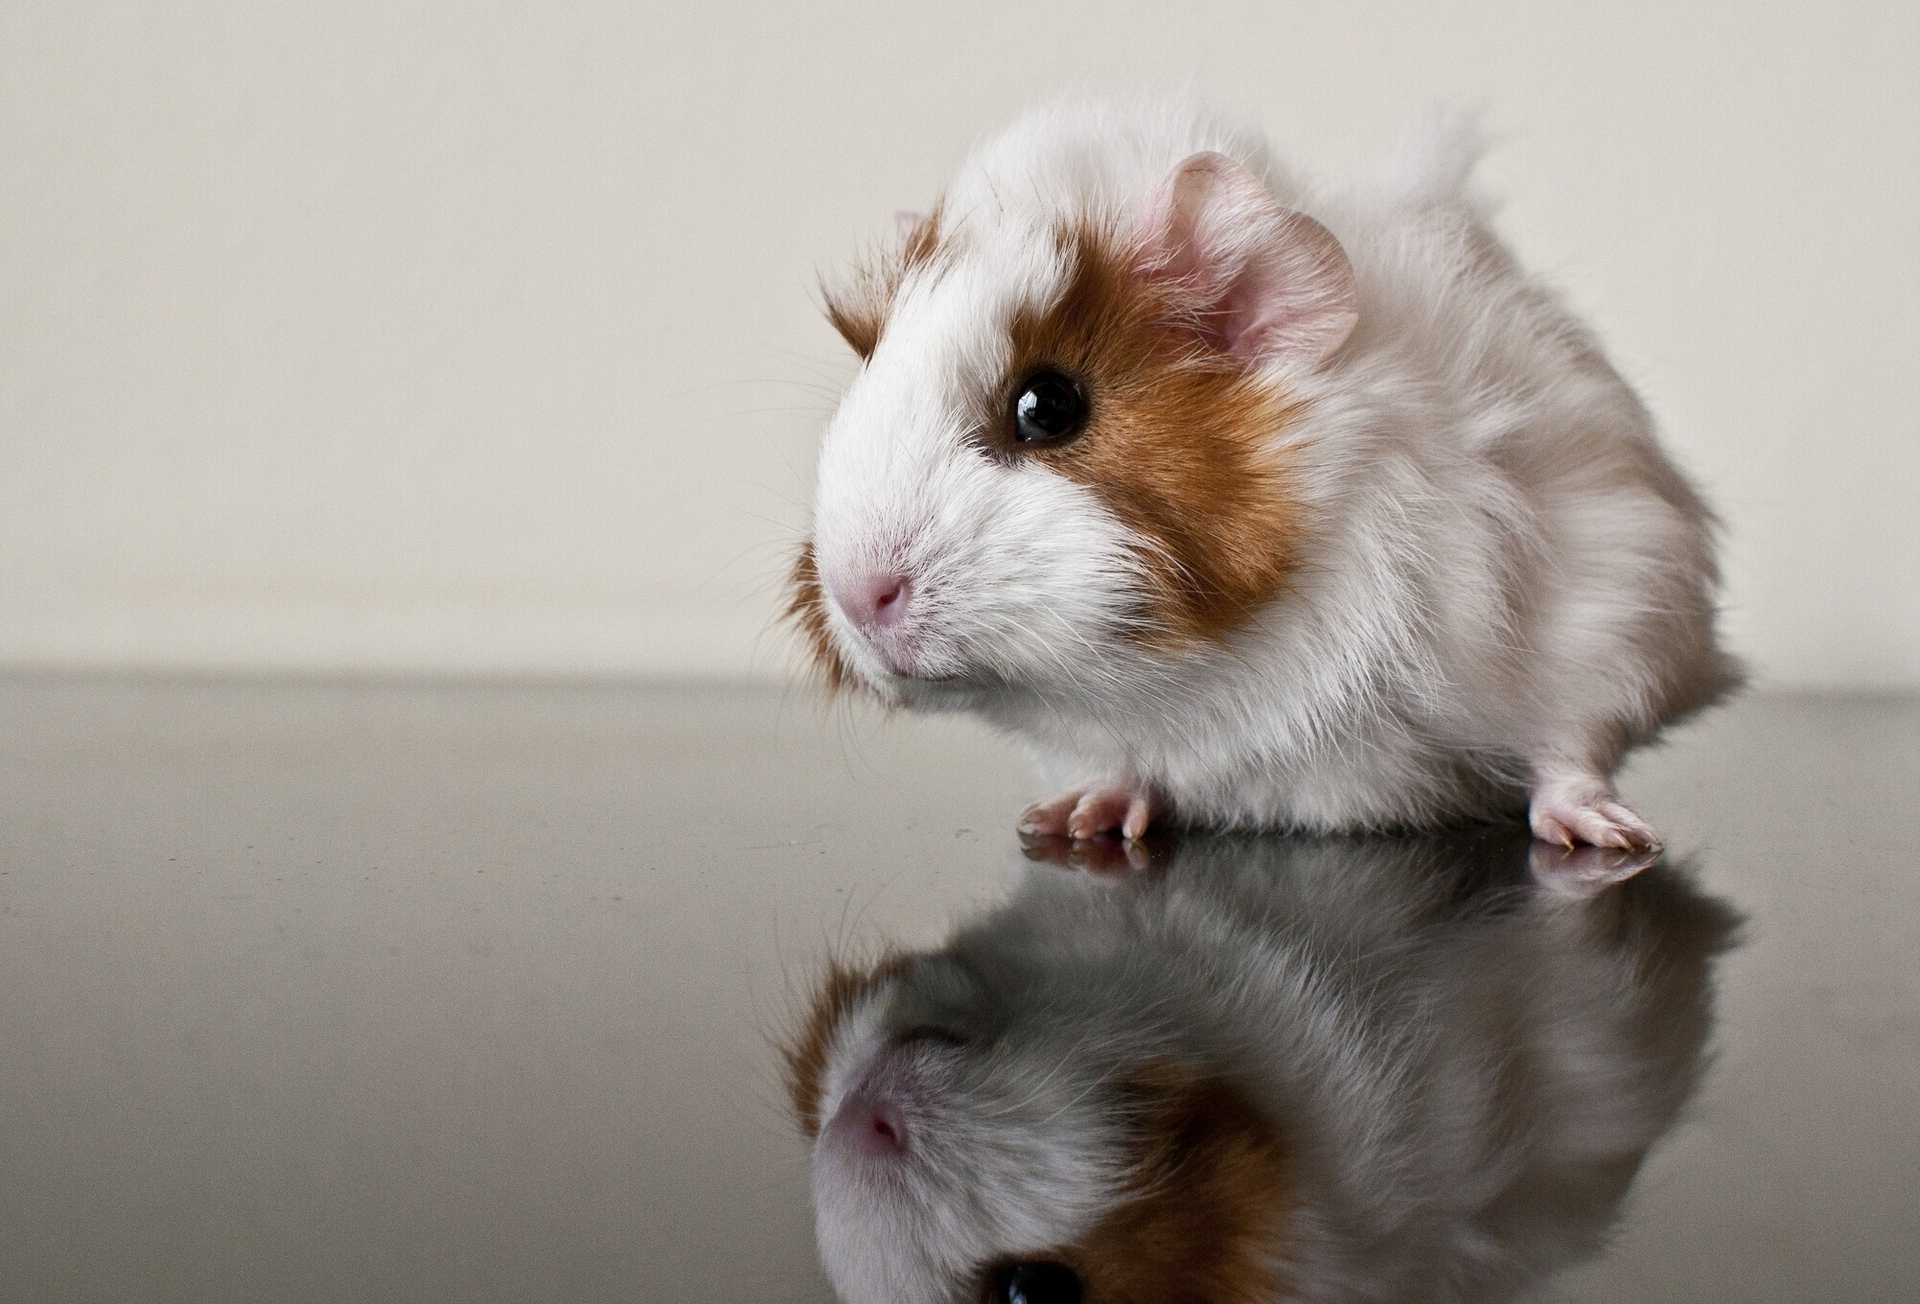 88773 download wallpaper Animals, Guinea Pig, Reflection, Rodent screensavers and pictures for free